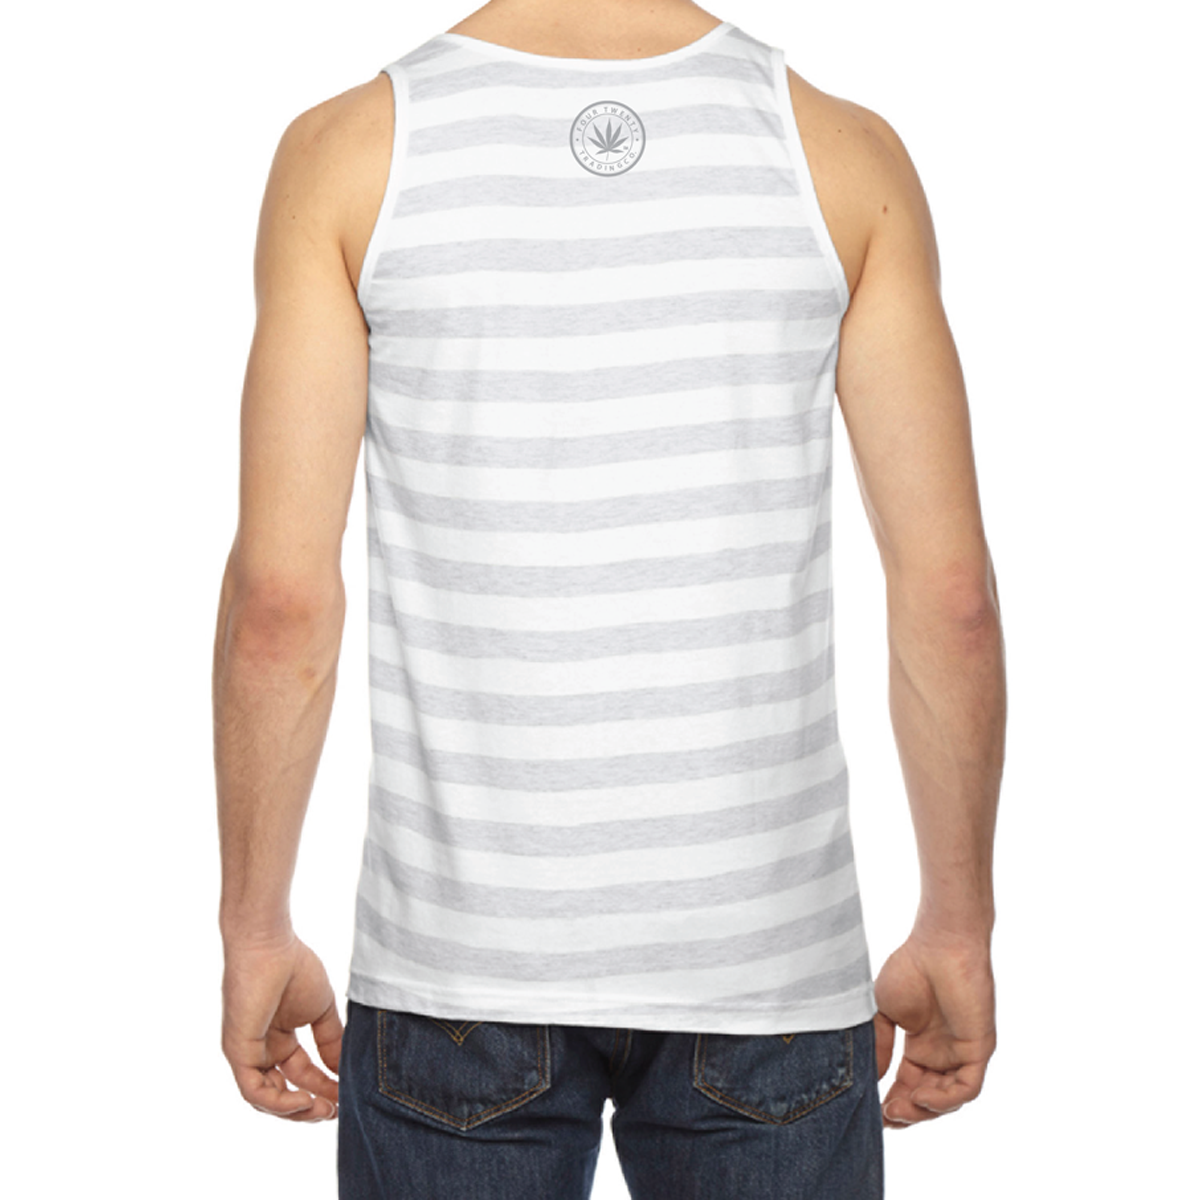 Four Twenty Baseball Logo Men's Stripped Tank